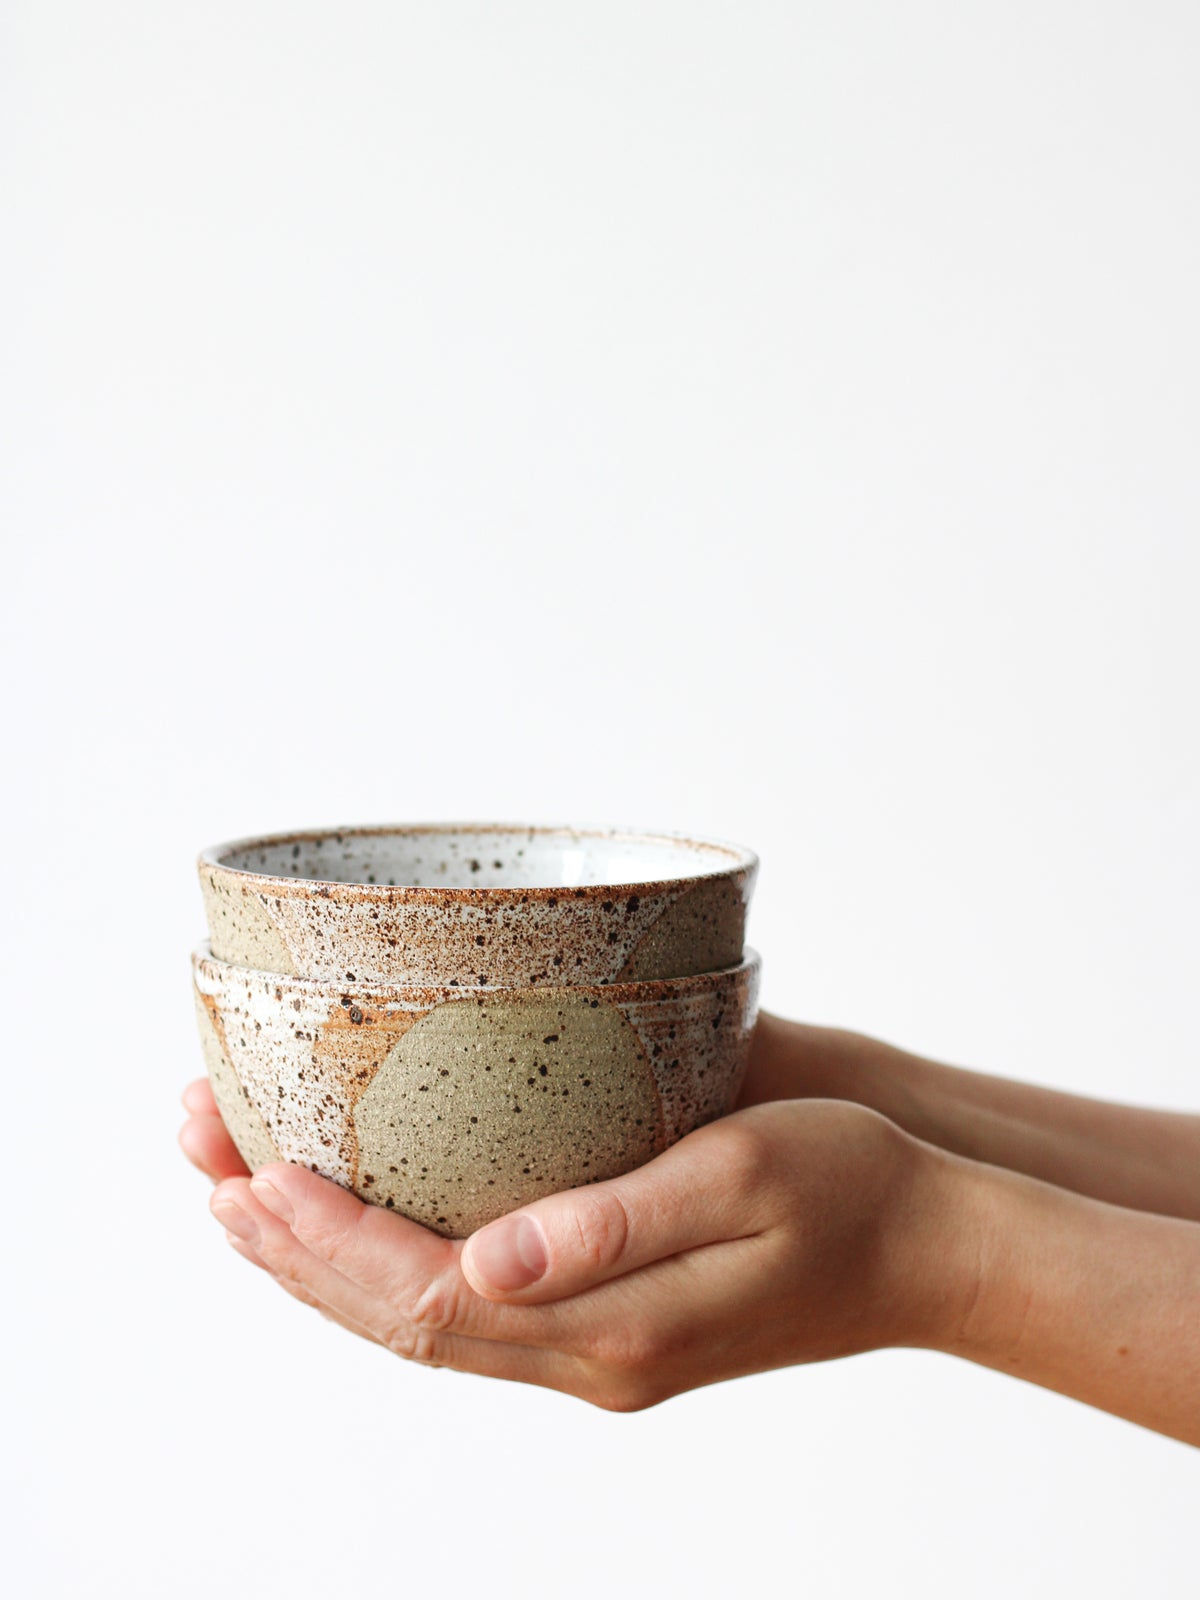 Image of bowl with drips